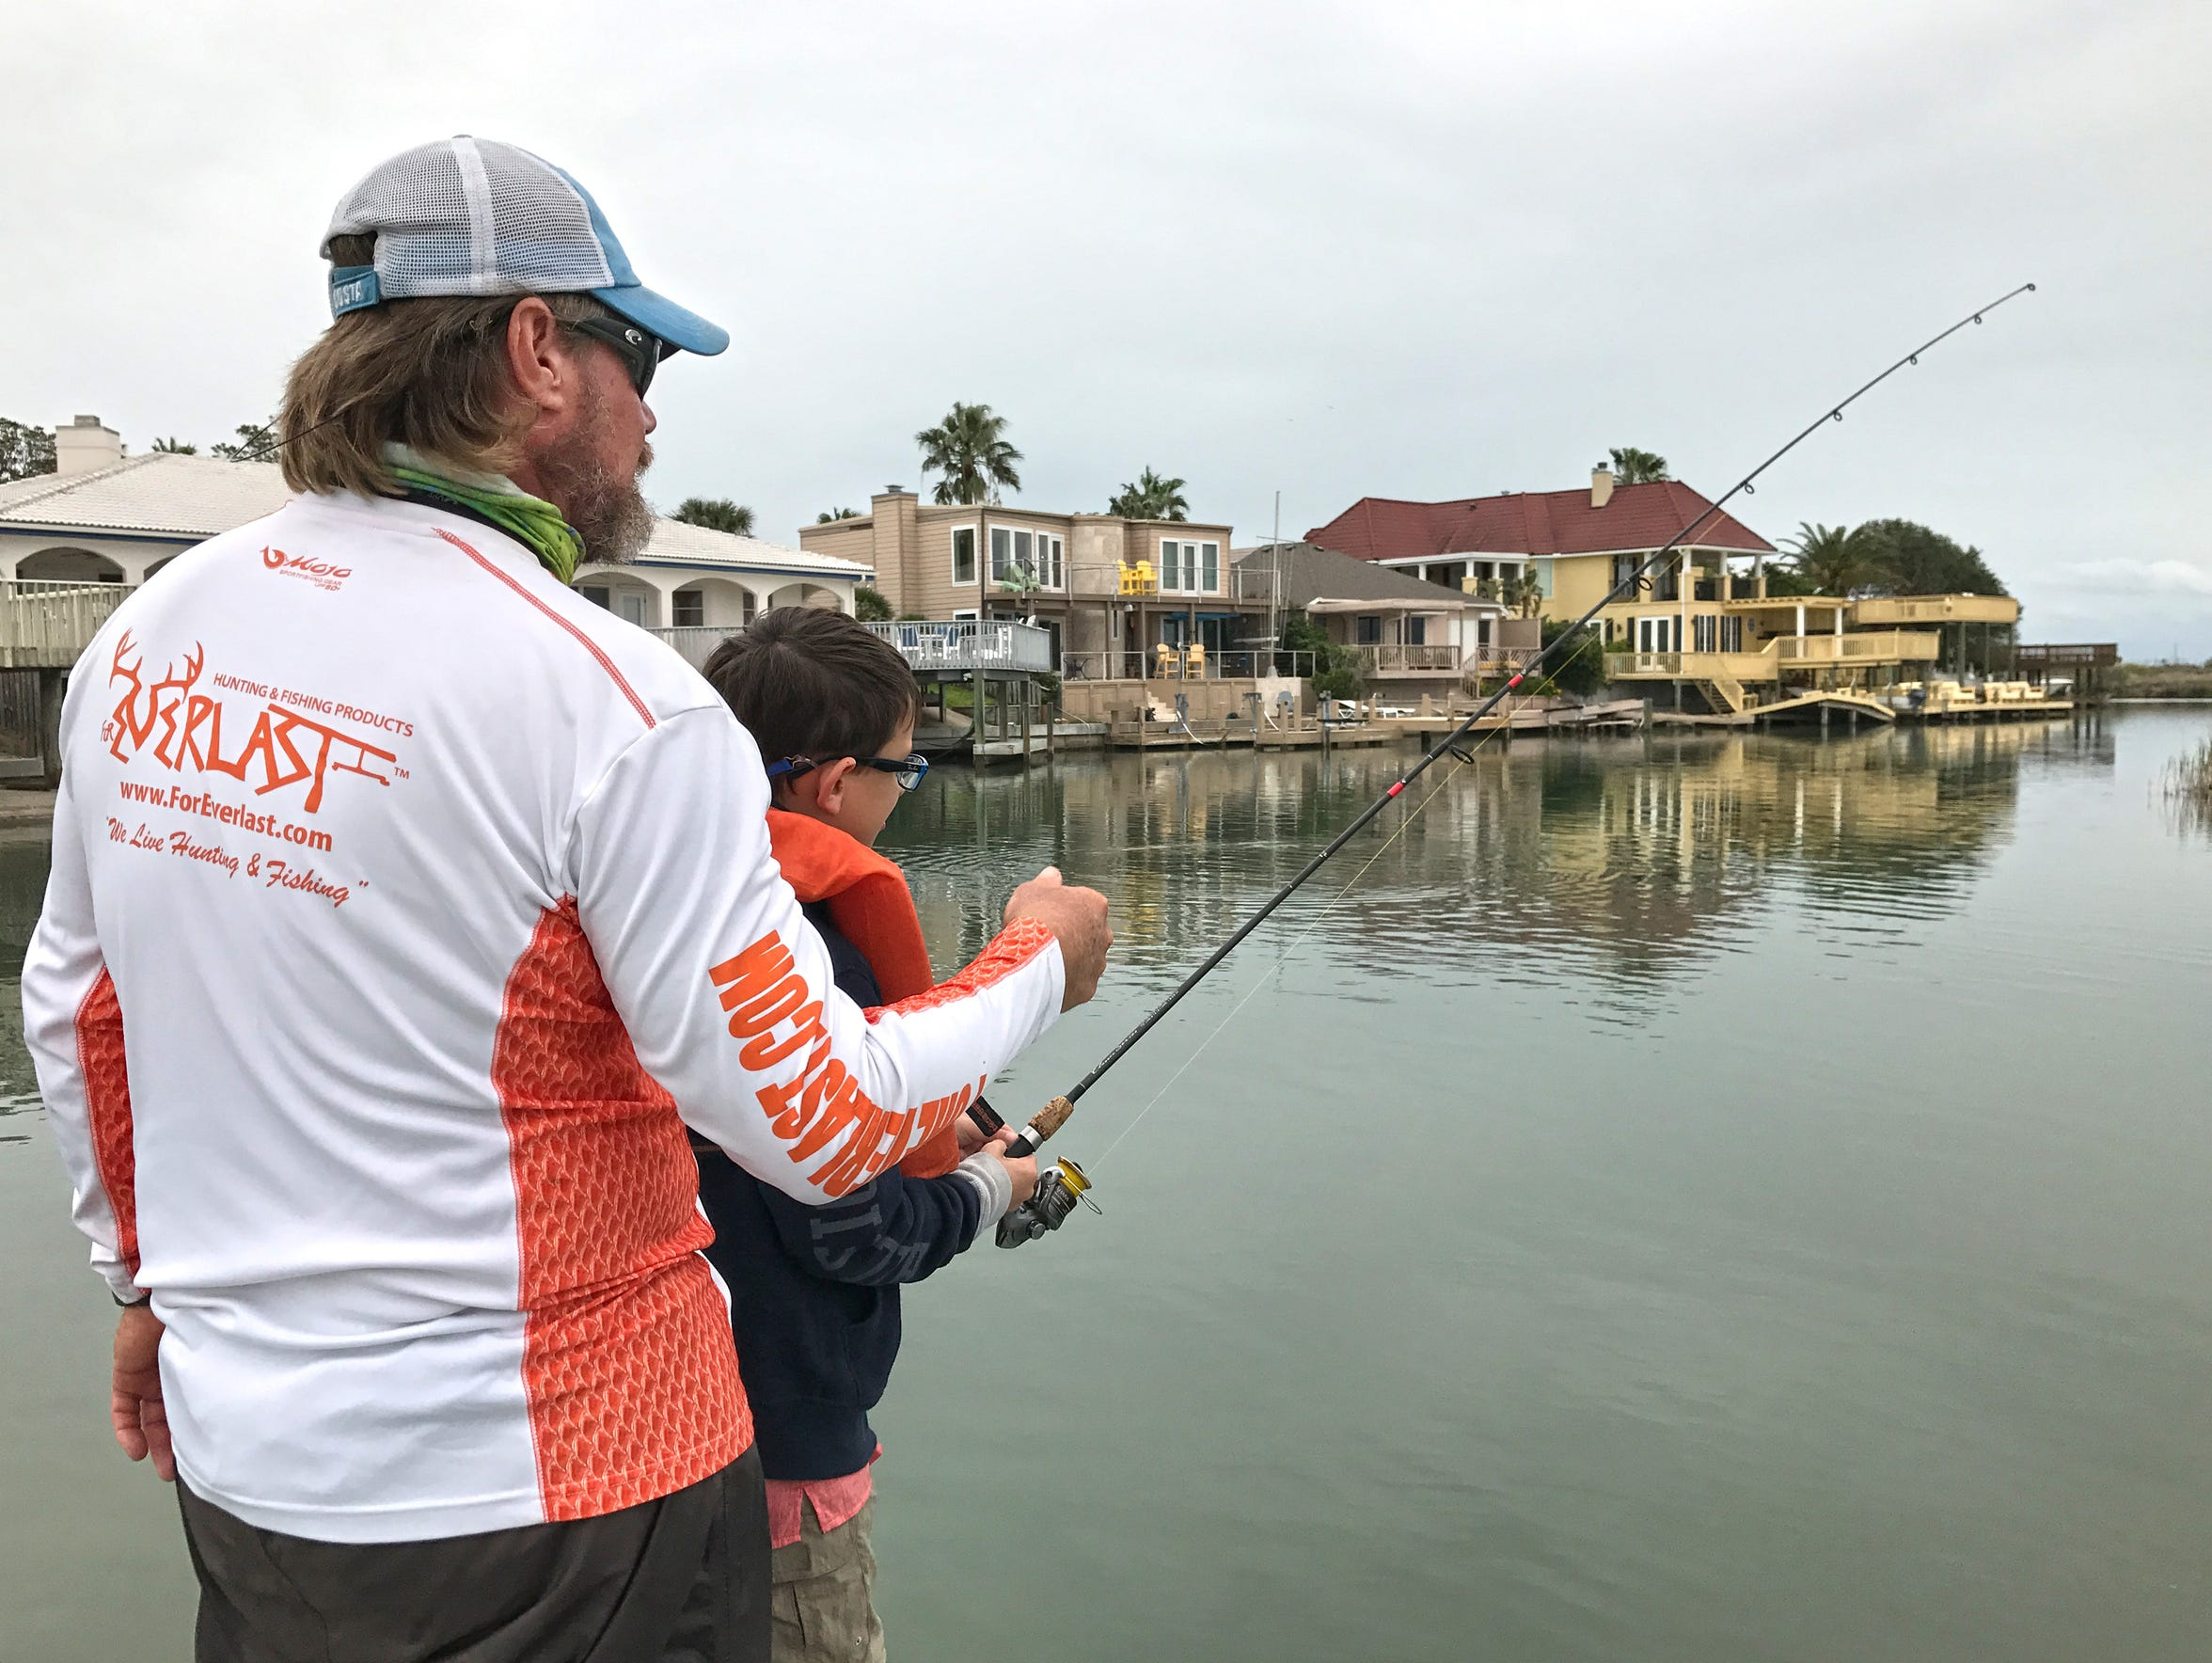 Most family fishing guides know from experience how